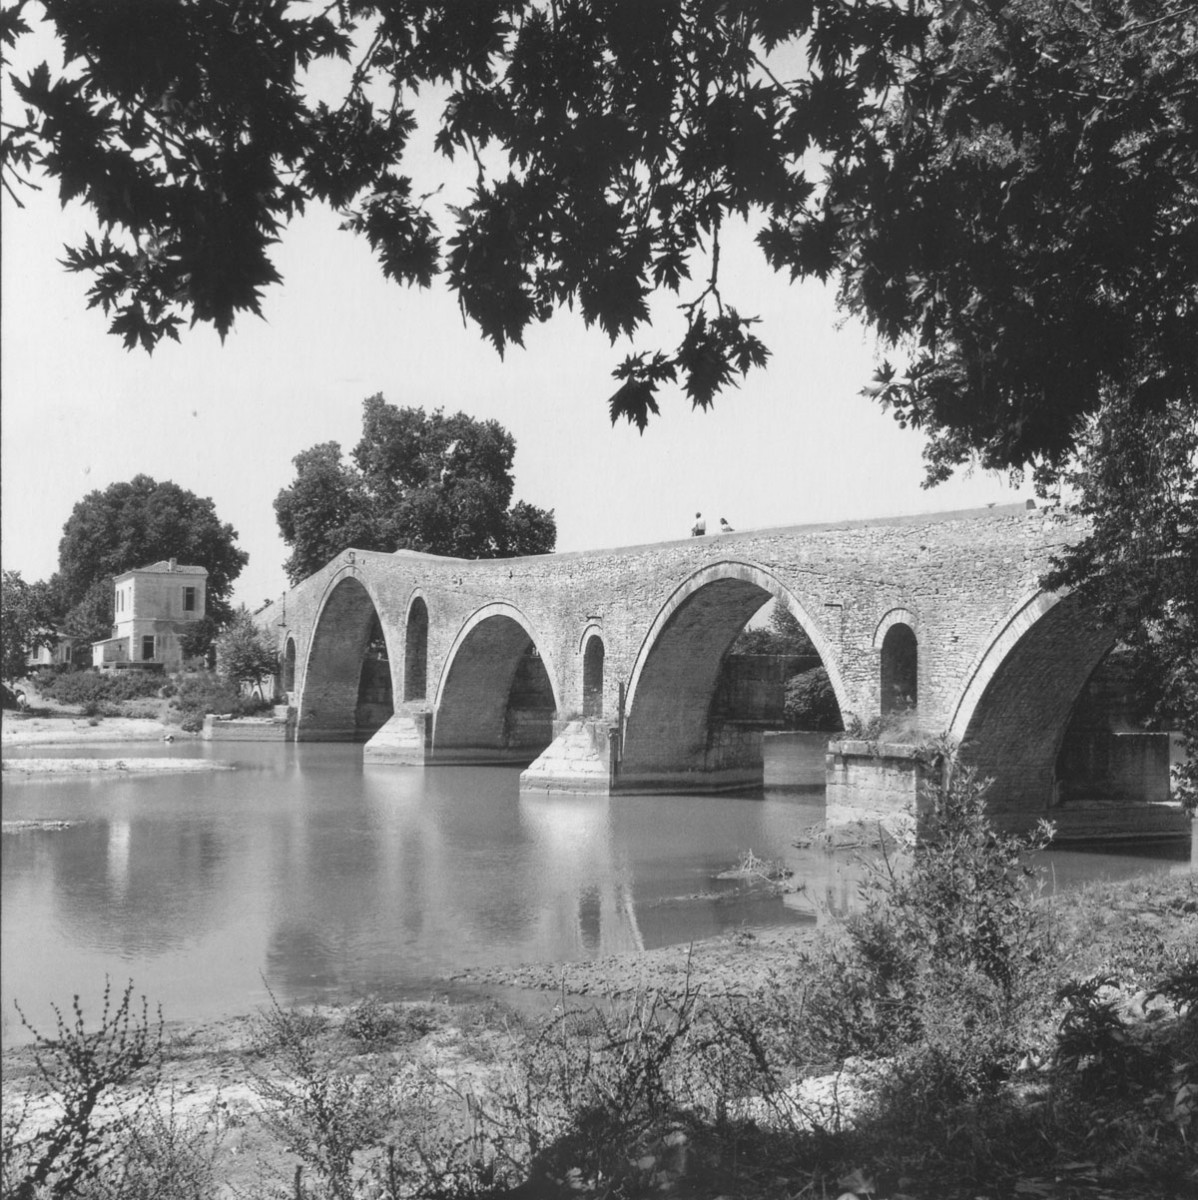 Fig. 1. Robert A. McCabe, The bridge of Arta (1961).